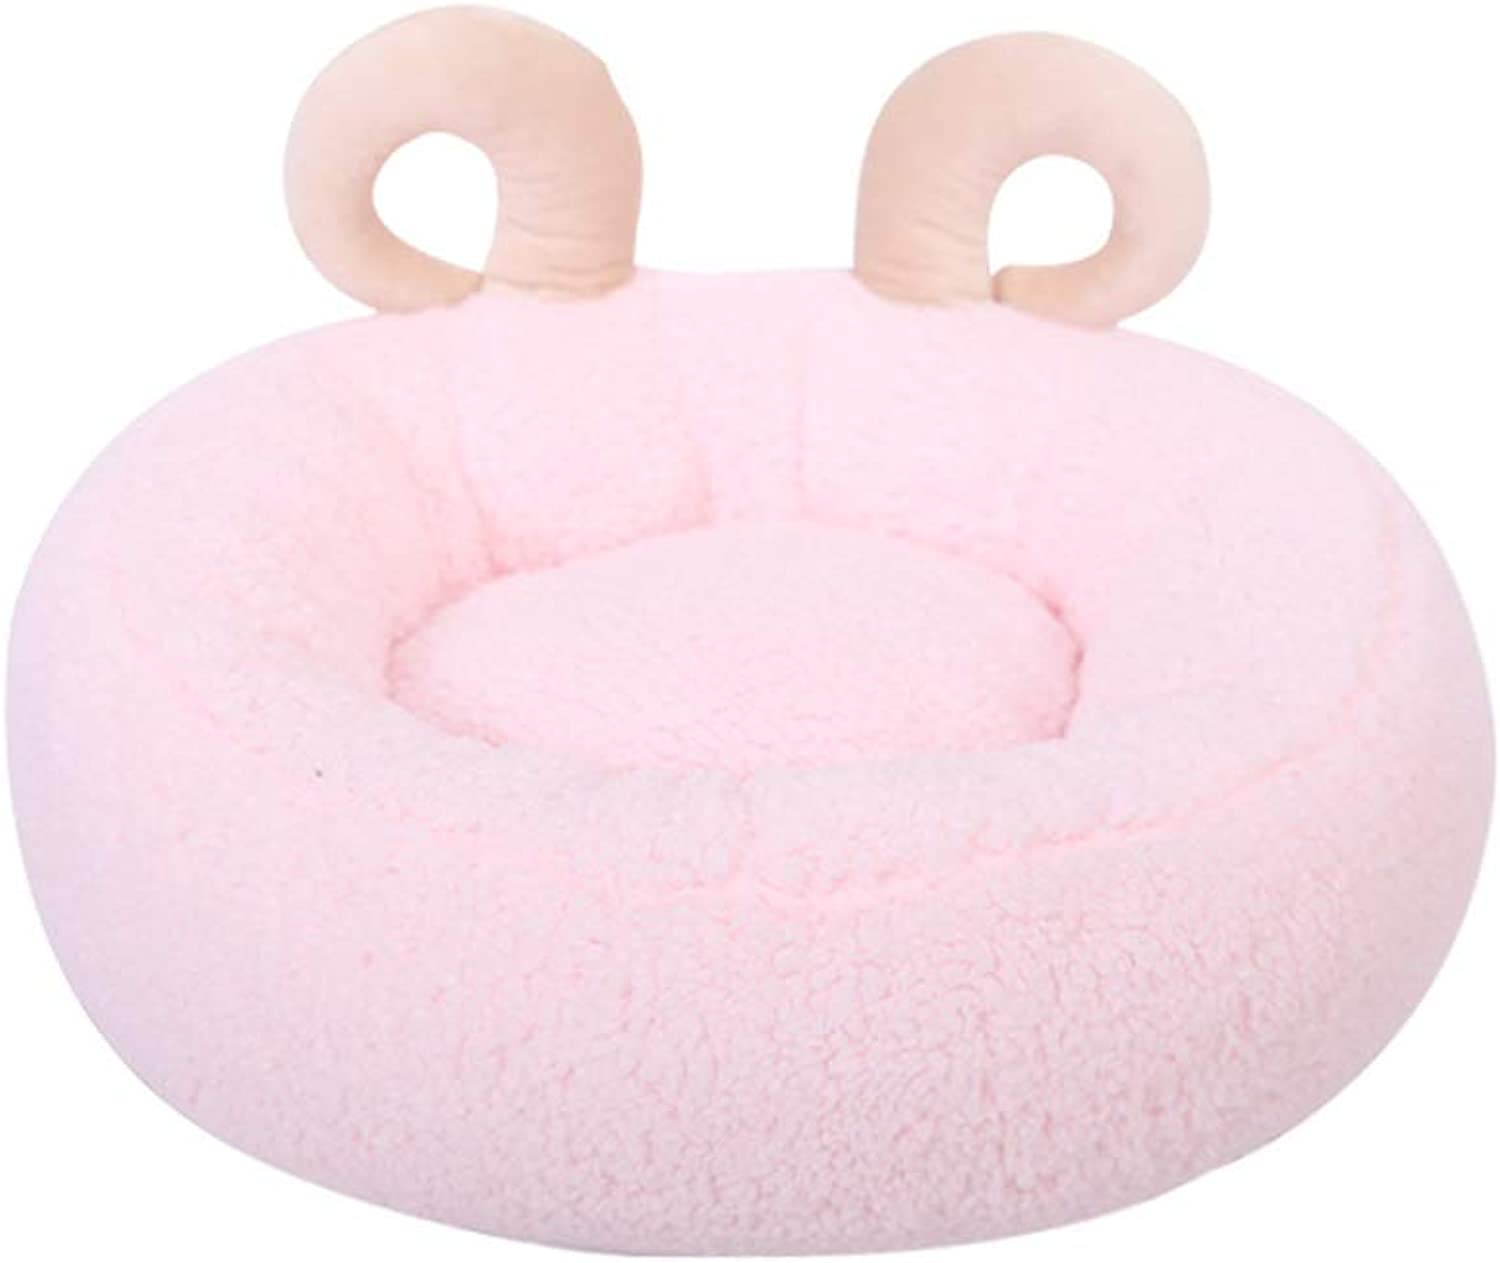 ,Warmth and SecurityCute Horn Shaped Round Pet Bedfor for Cats or Small Dogs,Multiple colors Available,Breathable Pet Bed Premium (color   Pink)